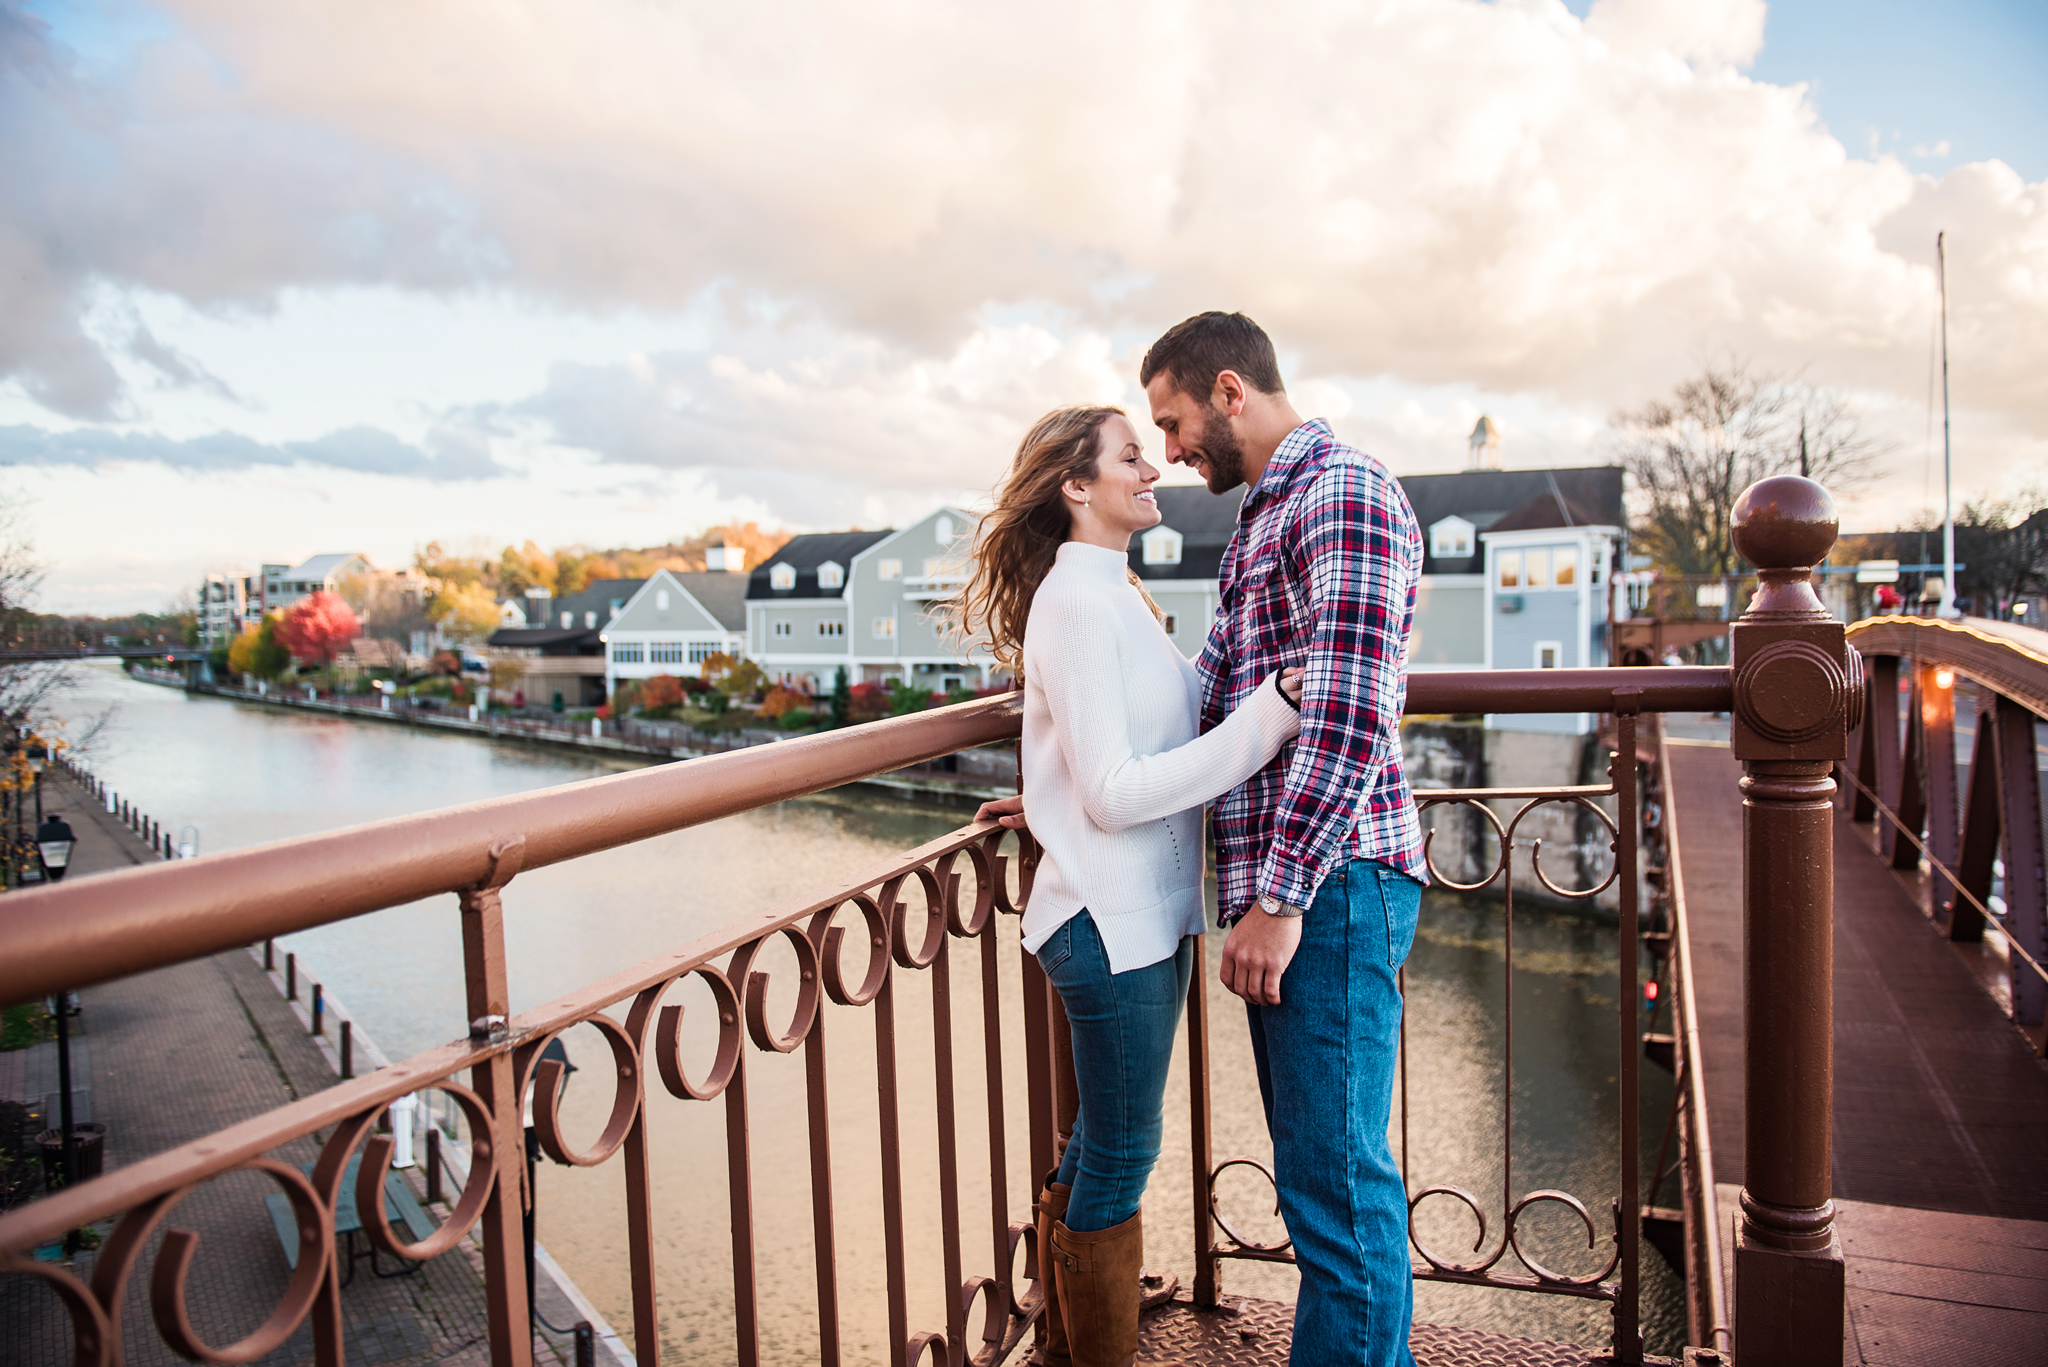 Village_of_Fairport_Rochester_Engagement_Session_JILL_STUDIO_Rochester_NY_Photographer_DSC_8765.jpg